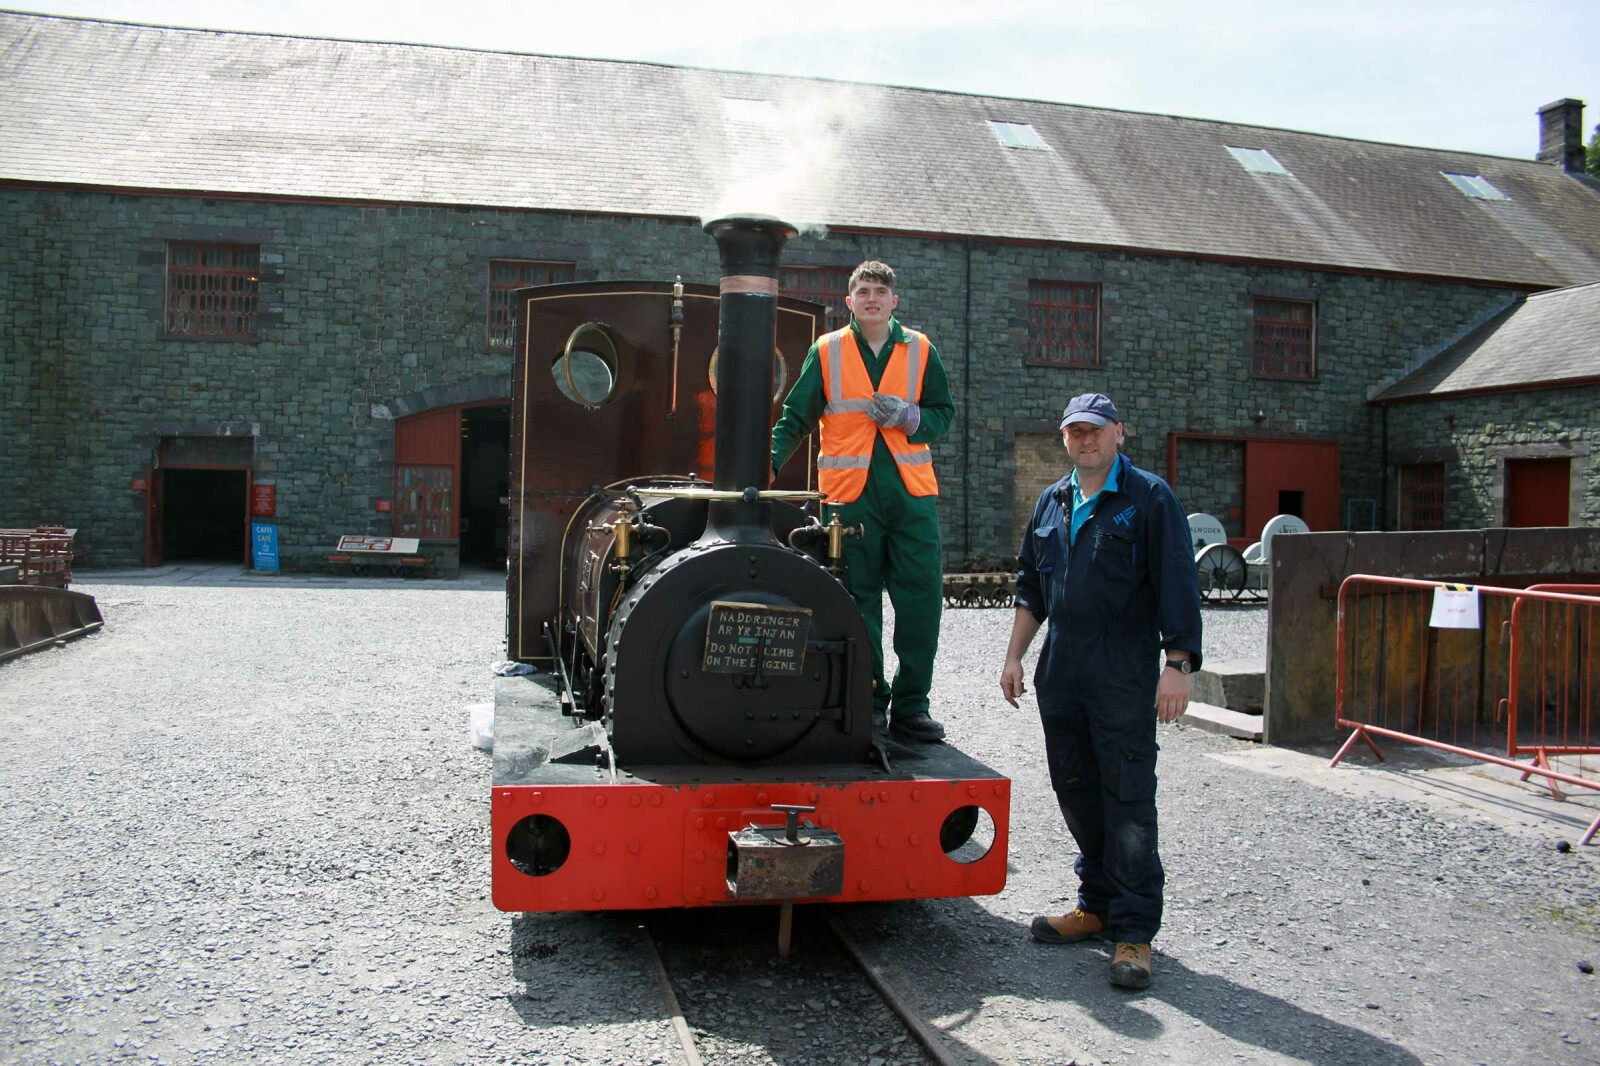 Two men standing by a steam train